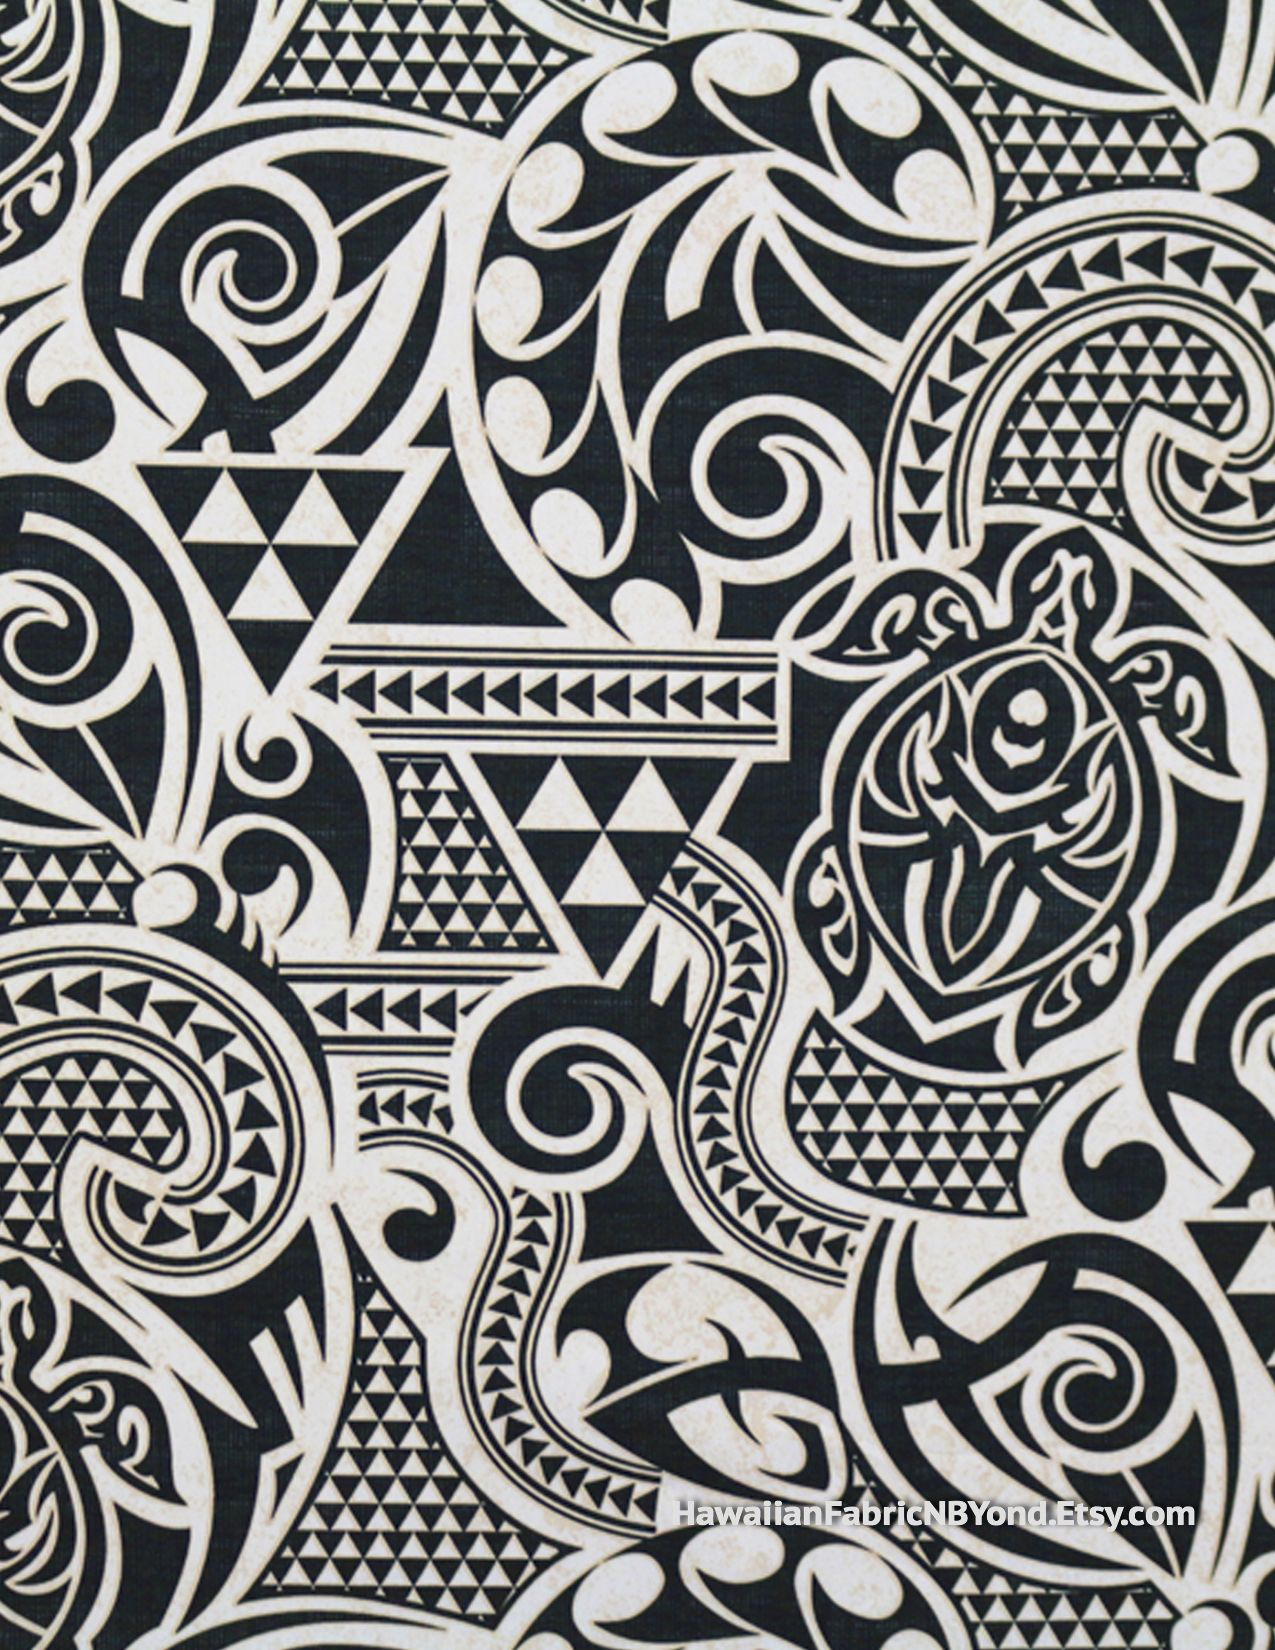 Fabric Polynesian Tribal Tapa Tattoo Patterns And Petroglyph